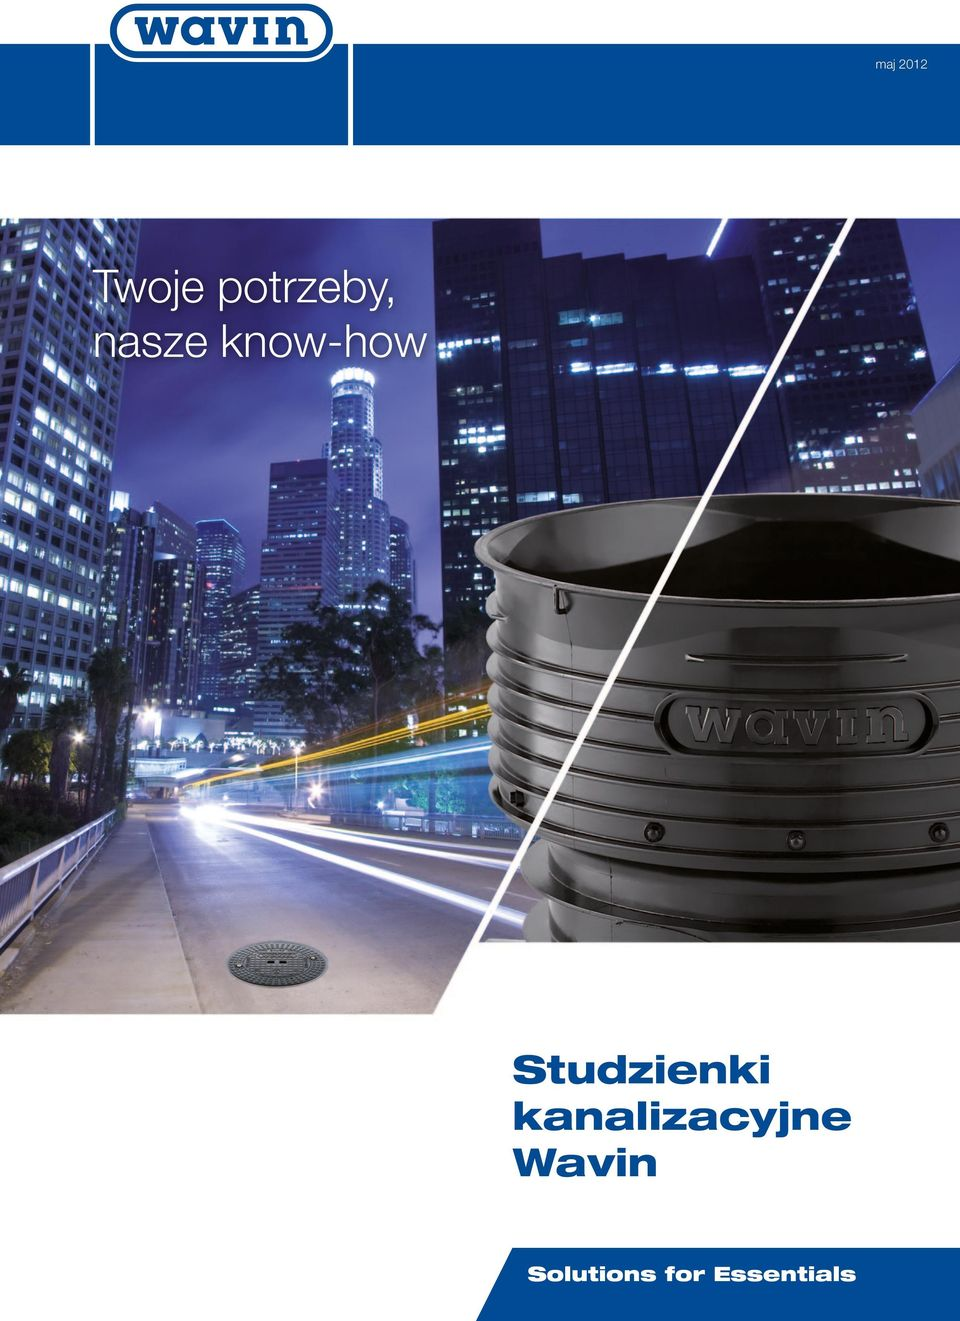 know-how Studzienki